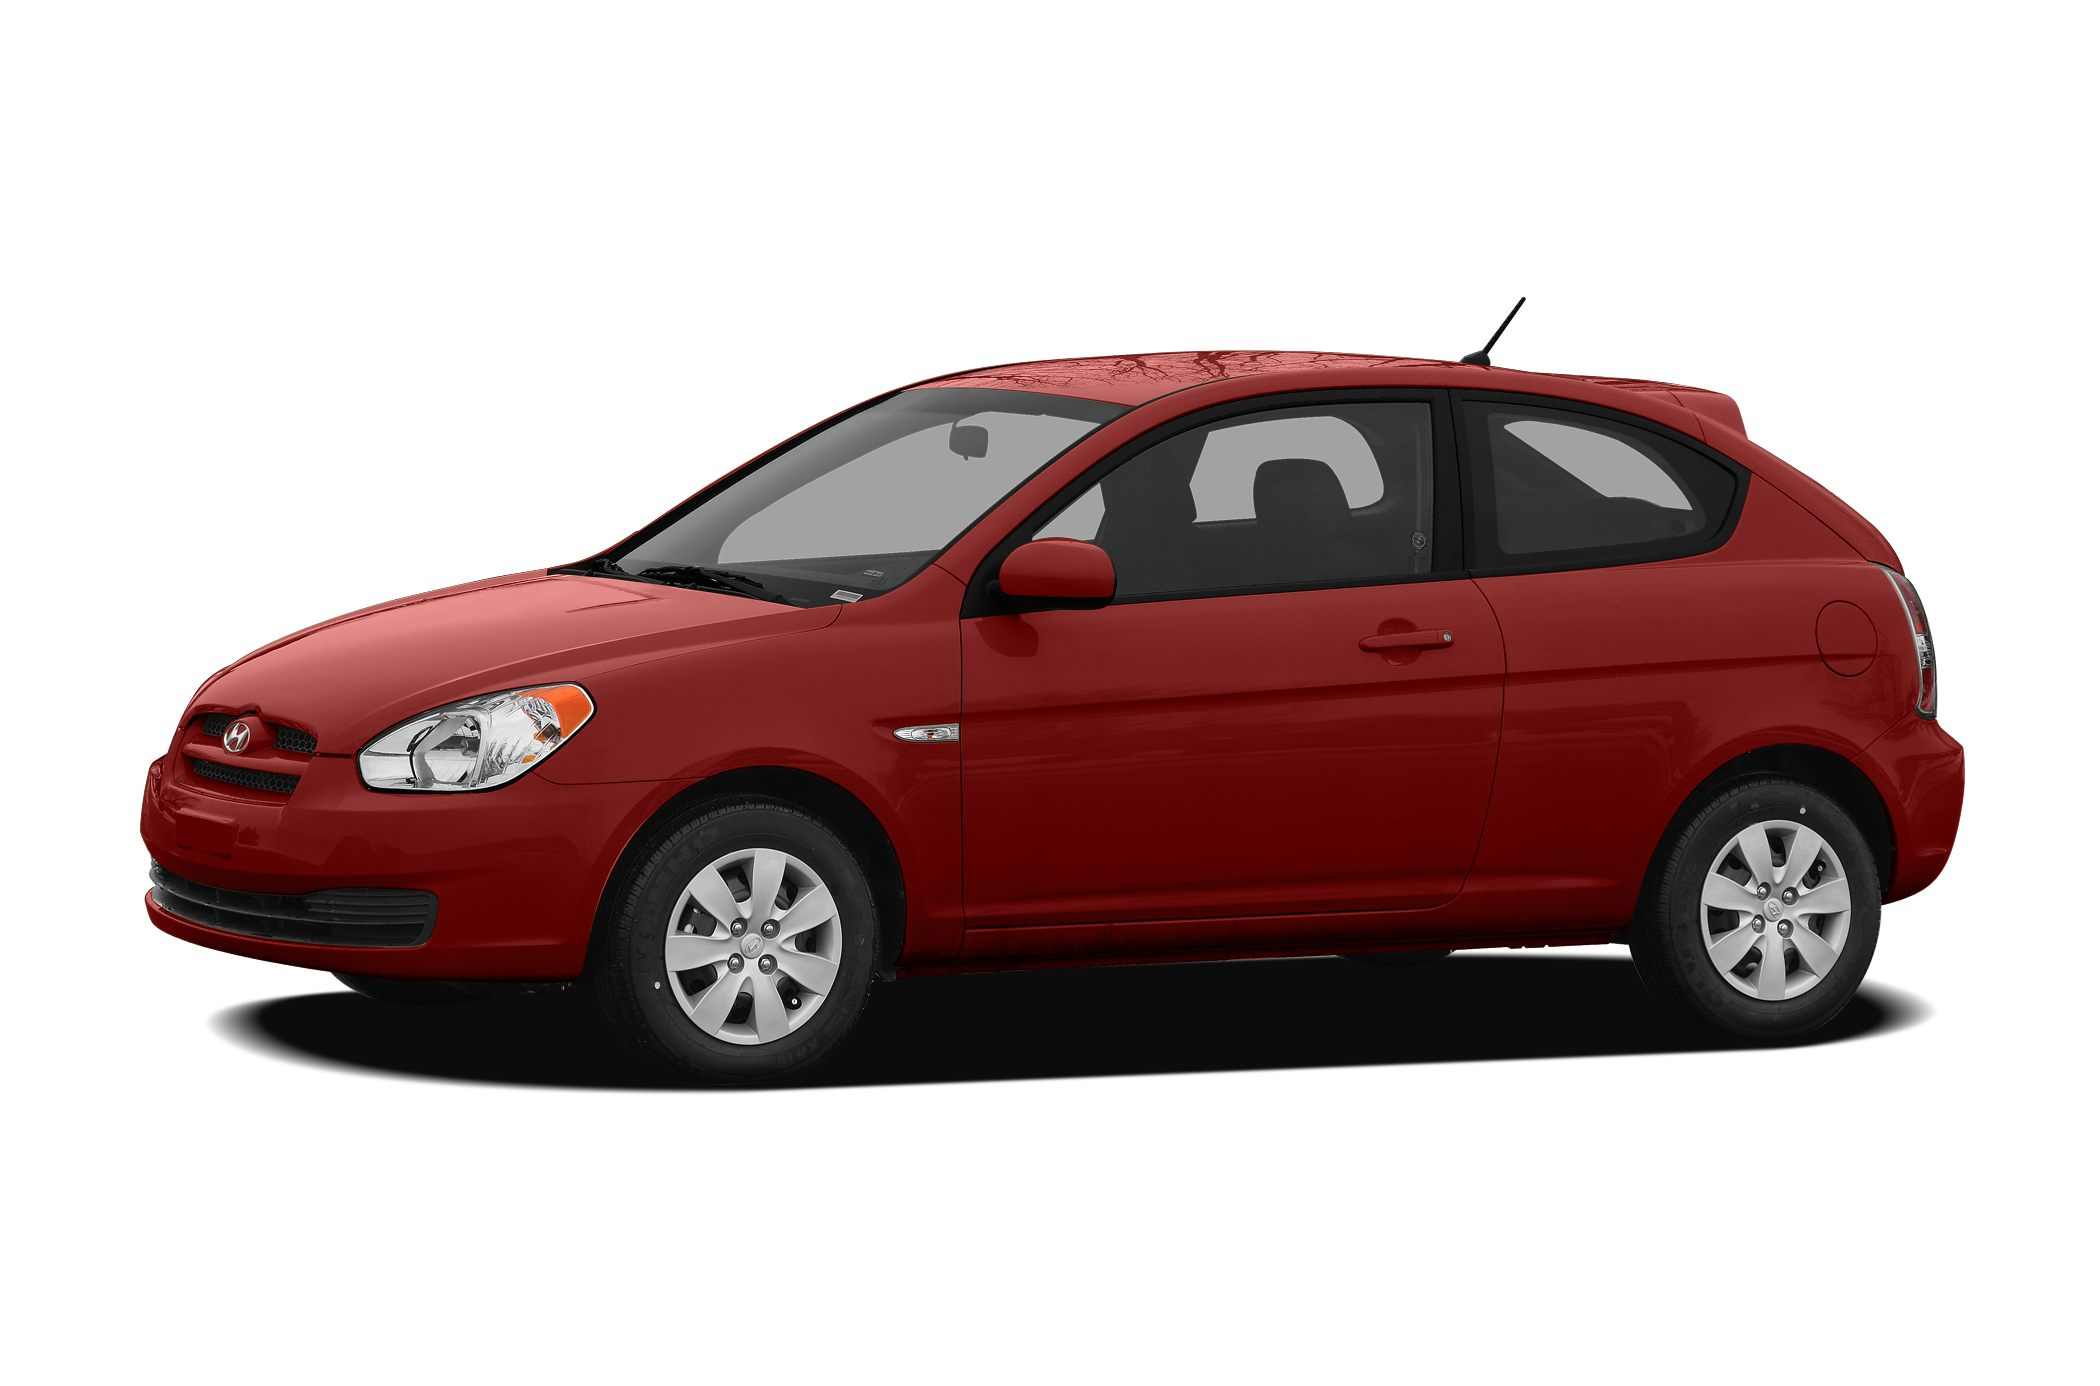 2010 Hyundai Accent GS Hatchback for sale in Downingtown for $8,990 with 25,601 miles